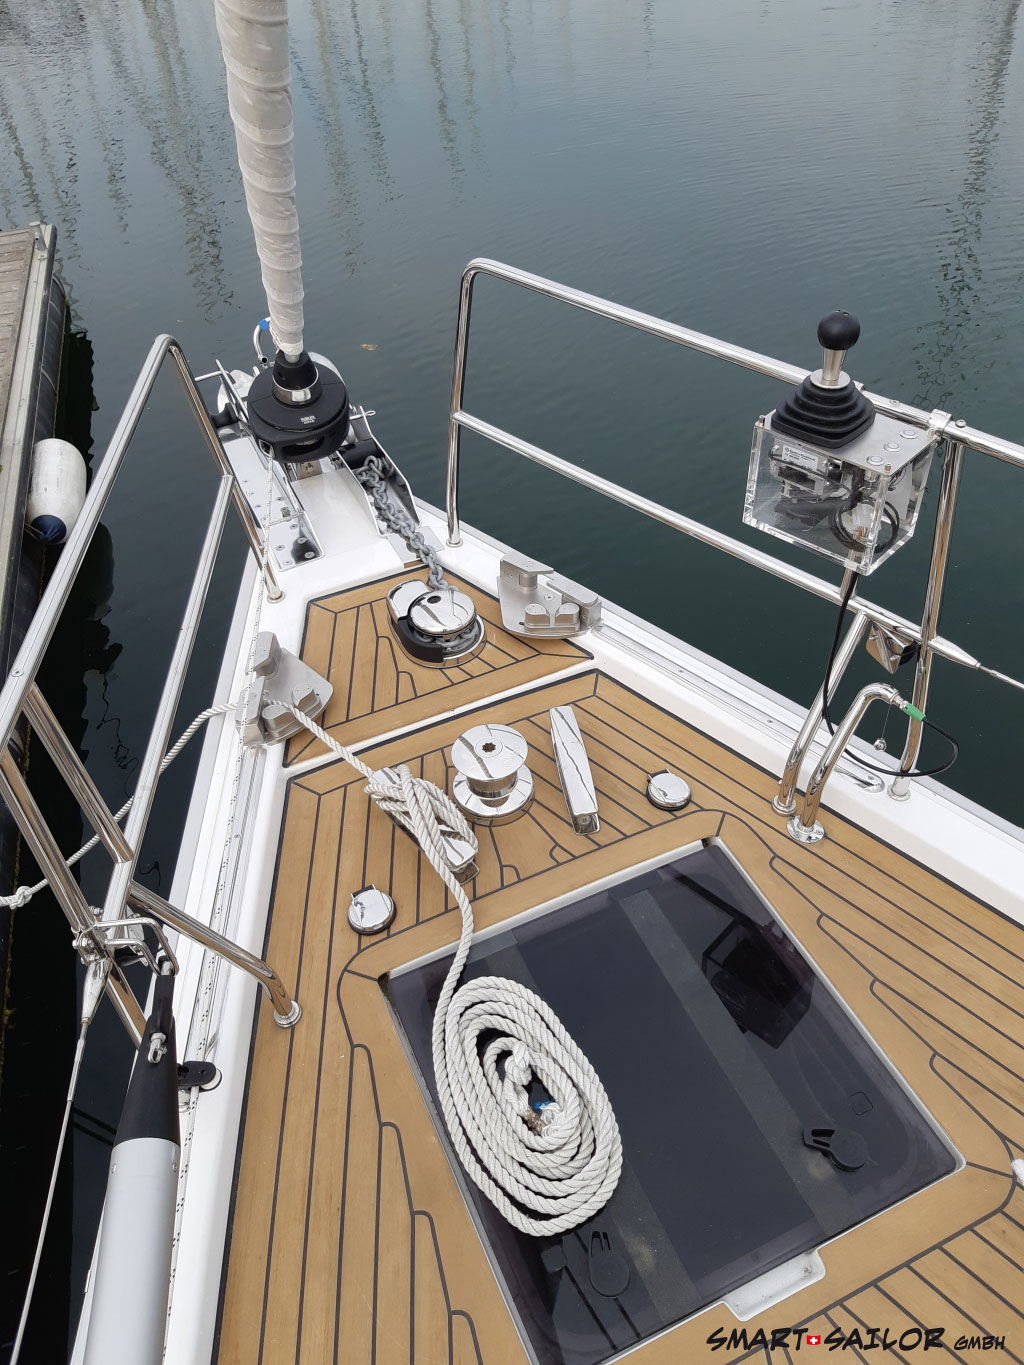 Smart Sailor GmbH - Mooring-Catcher